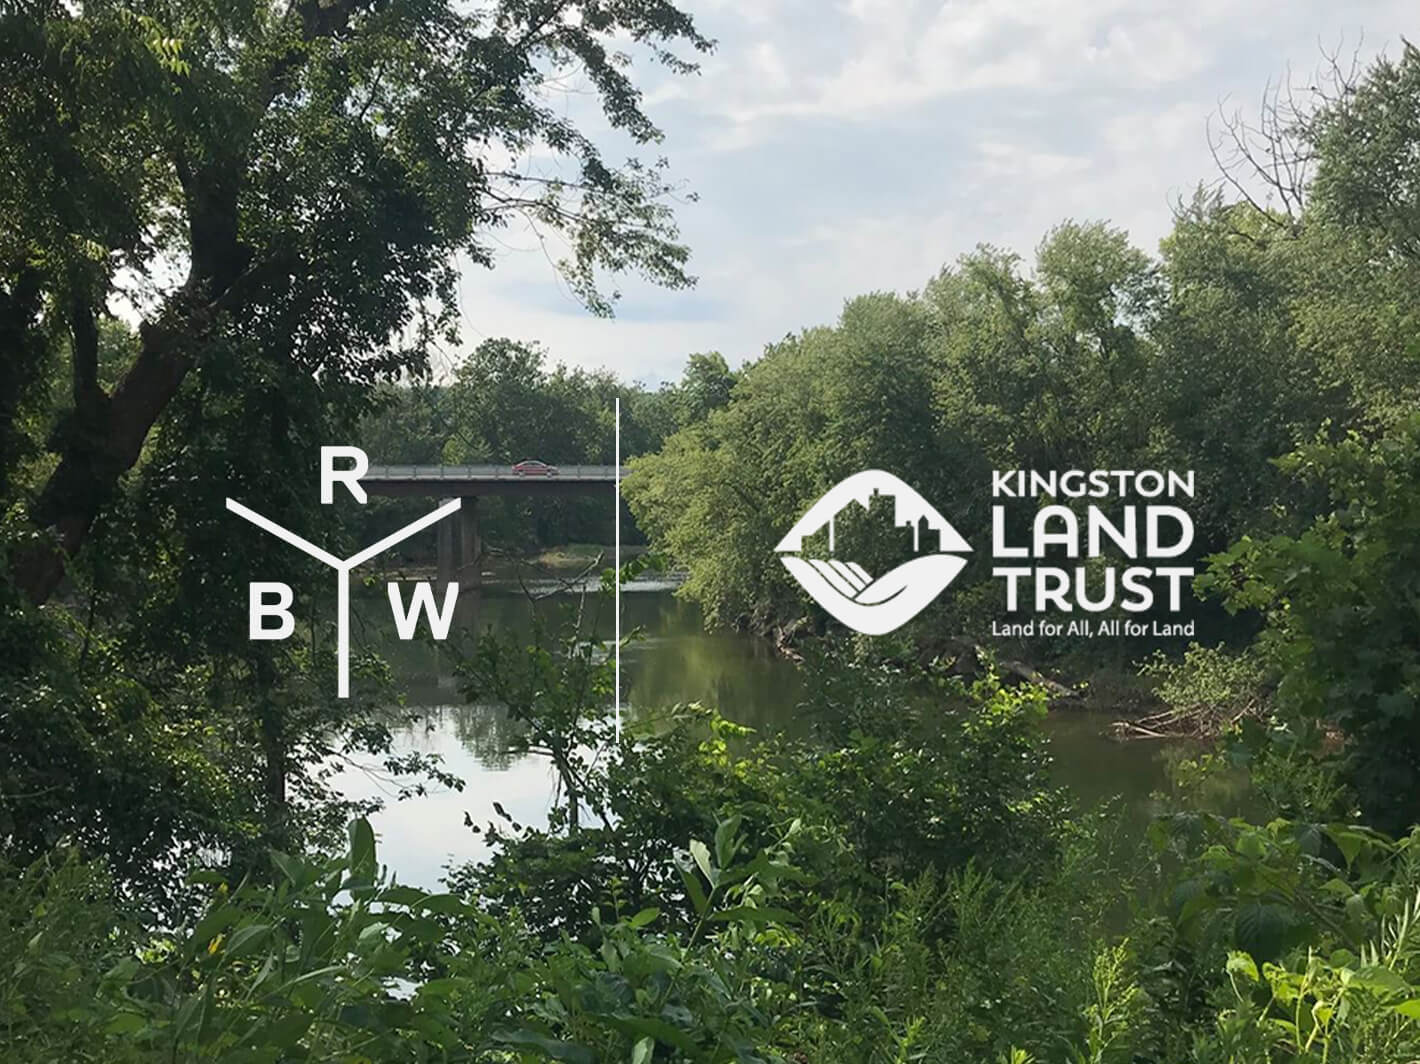 Partnering with Kingston Land Trust